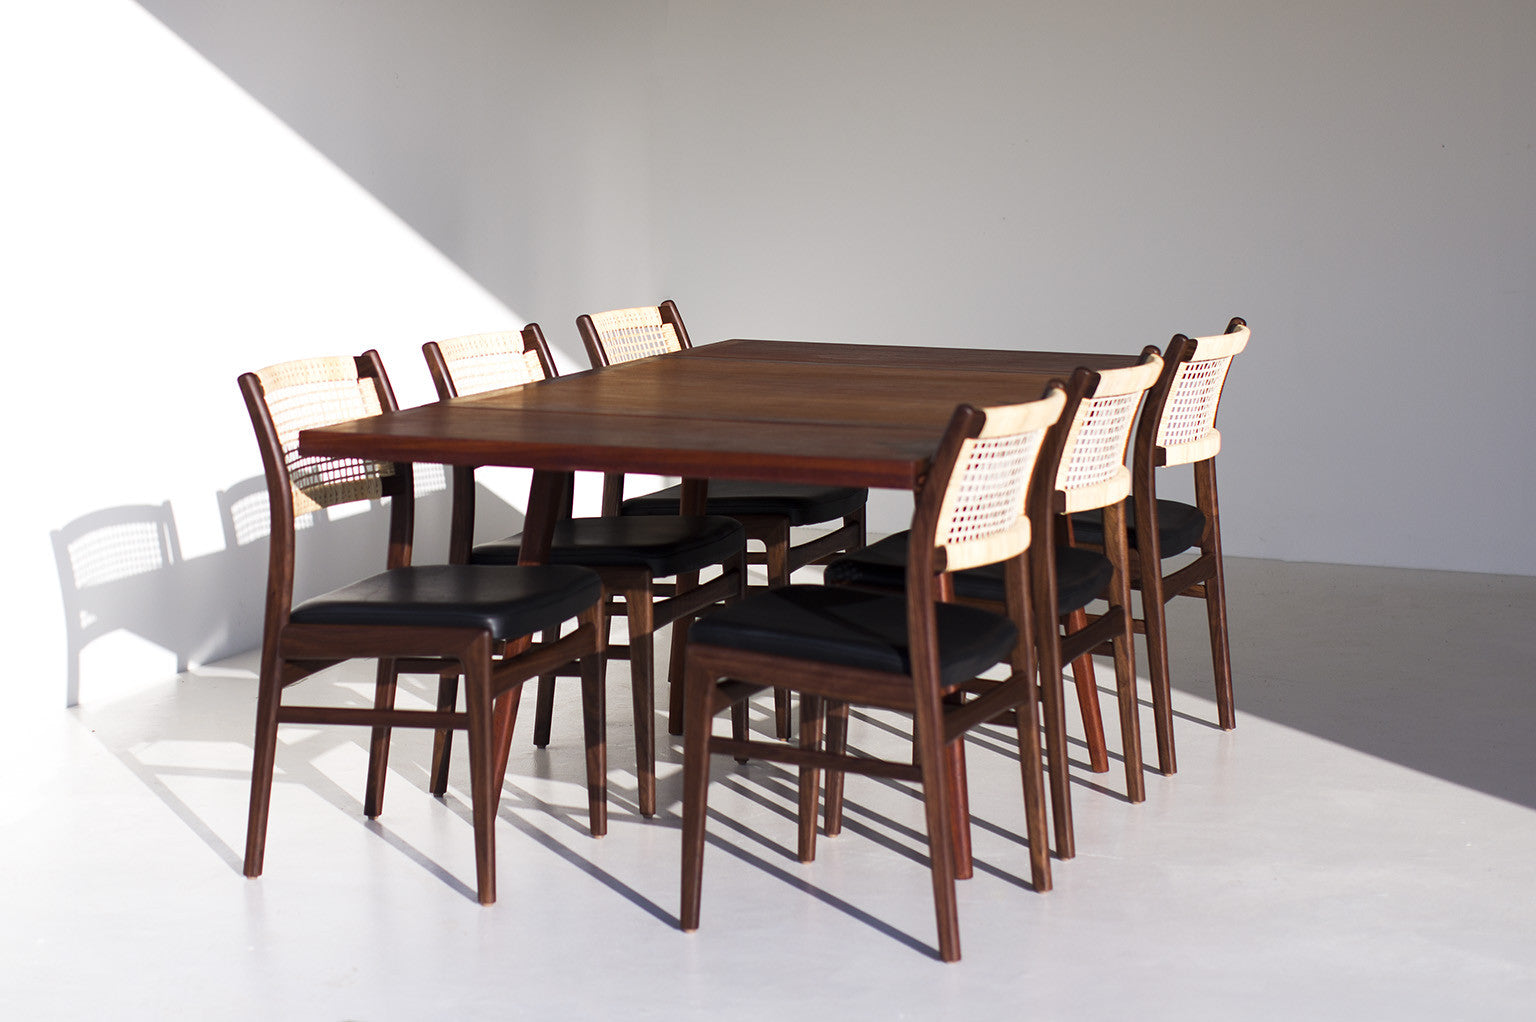 sylve-stenquist-dining-chairs-tribute-furniture-T-1002-11